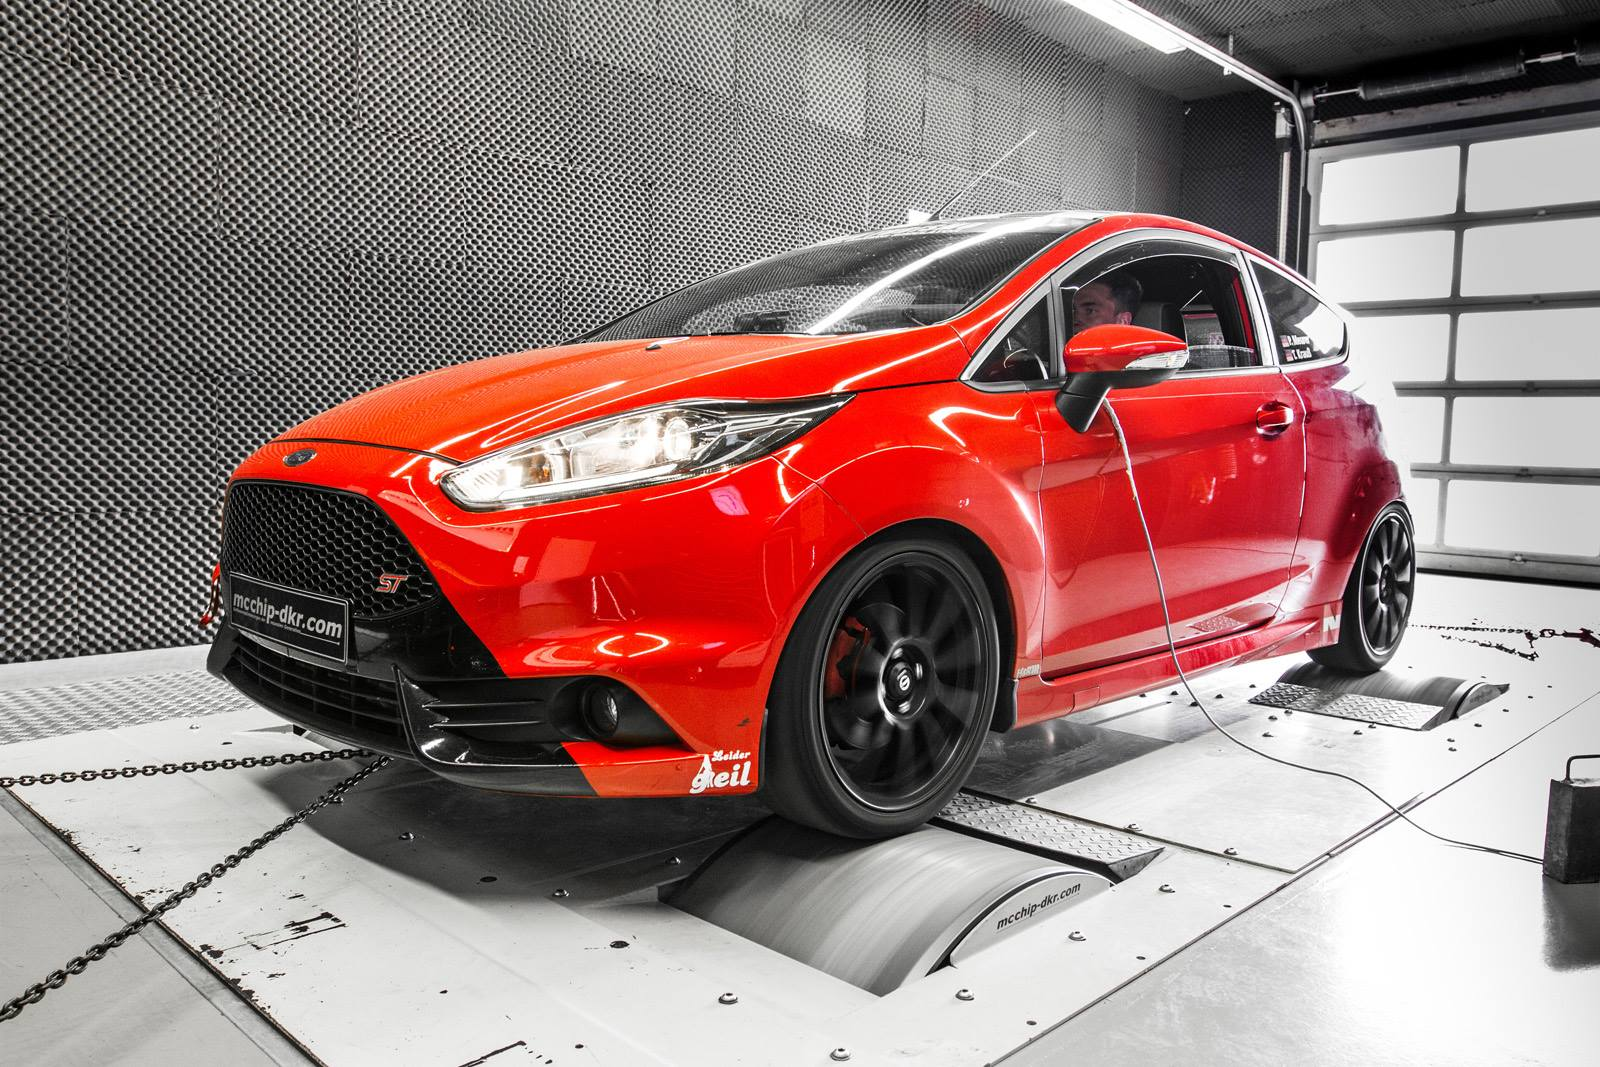 mcchip dkr ford fiesta st 1 6 turbo now produces 266 ps power. Black Bedroom Furniture Sets. Home Design Ideas